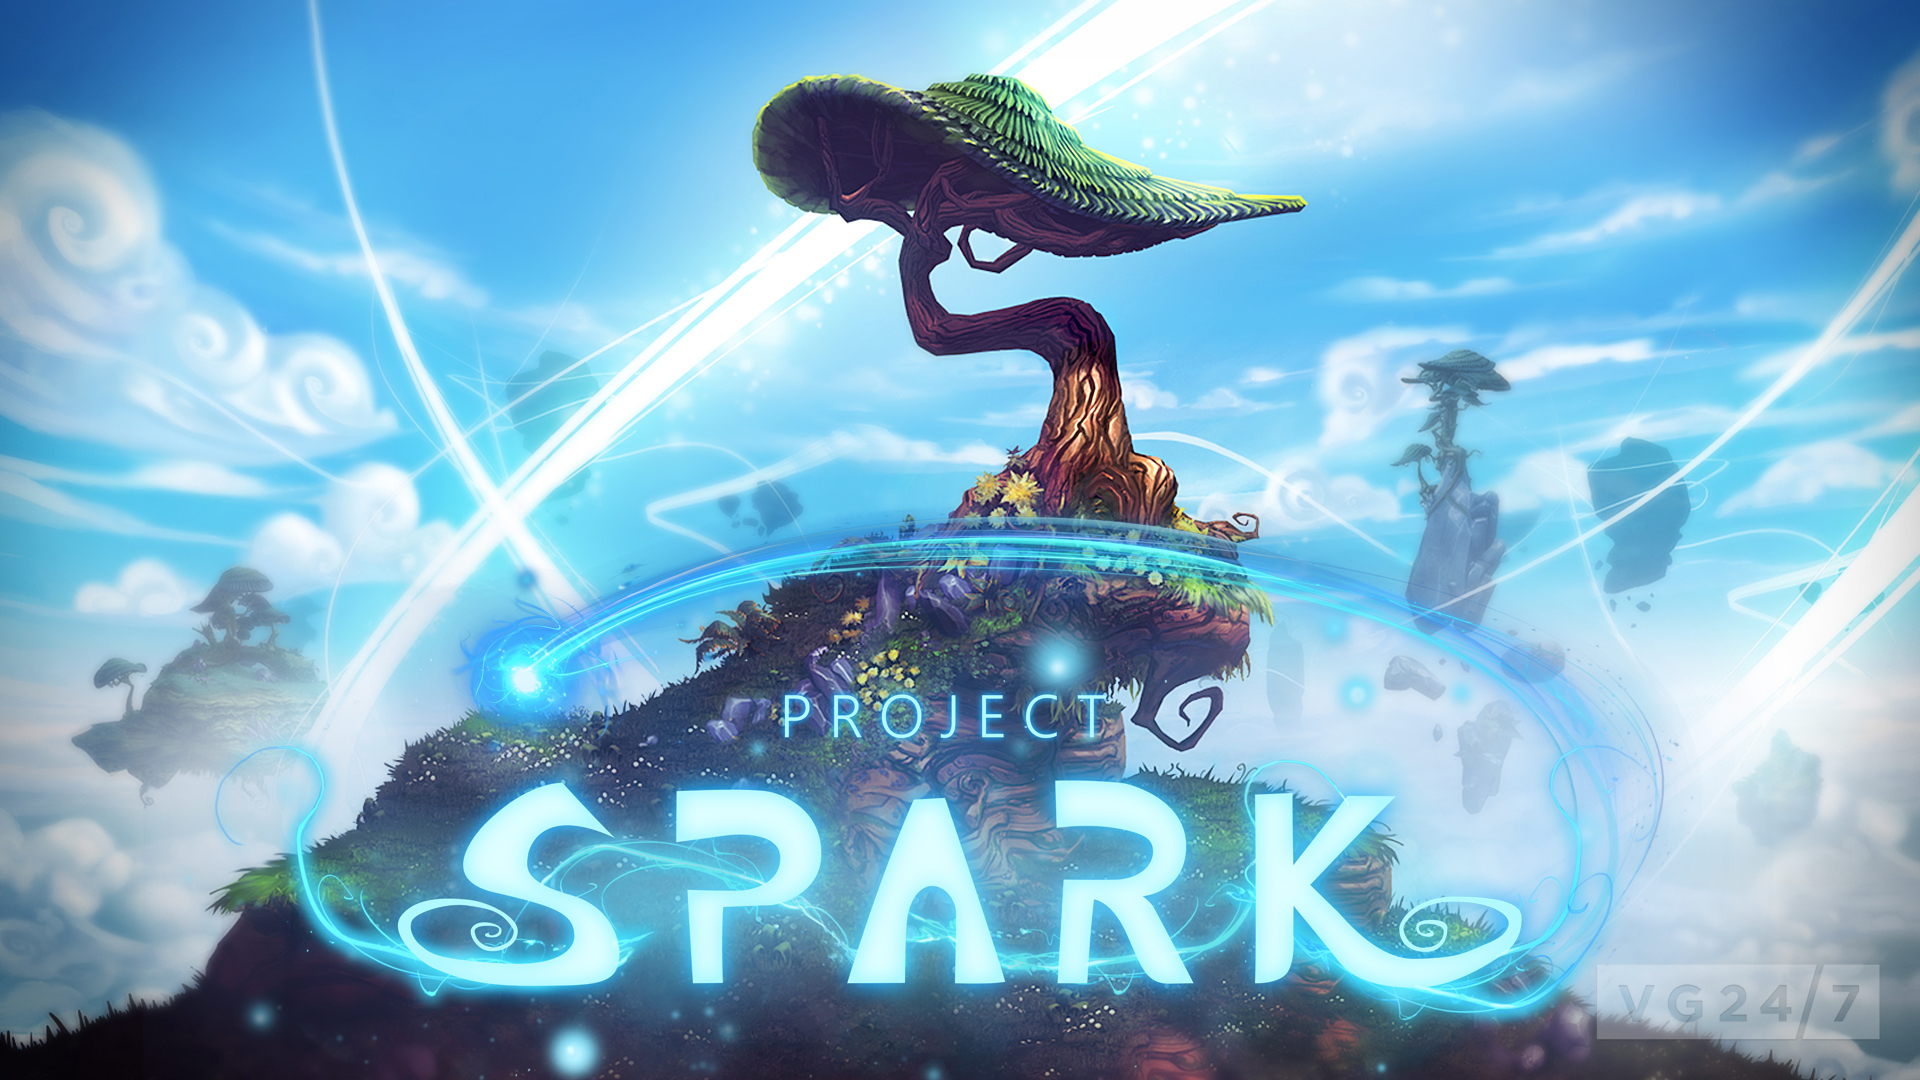 Project_Spark_BK